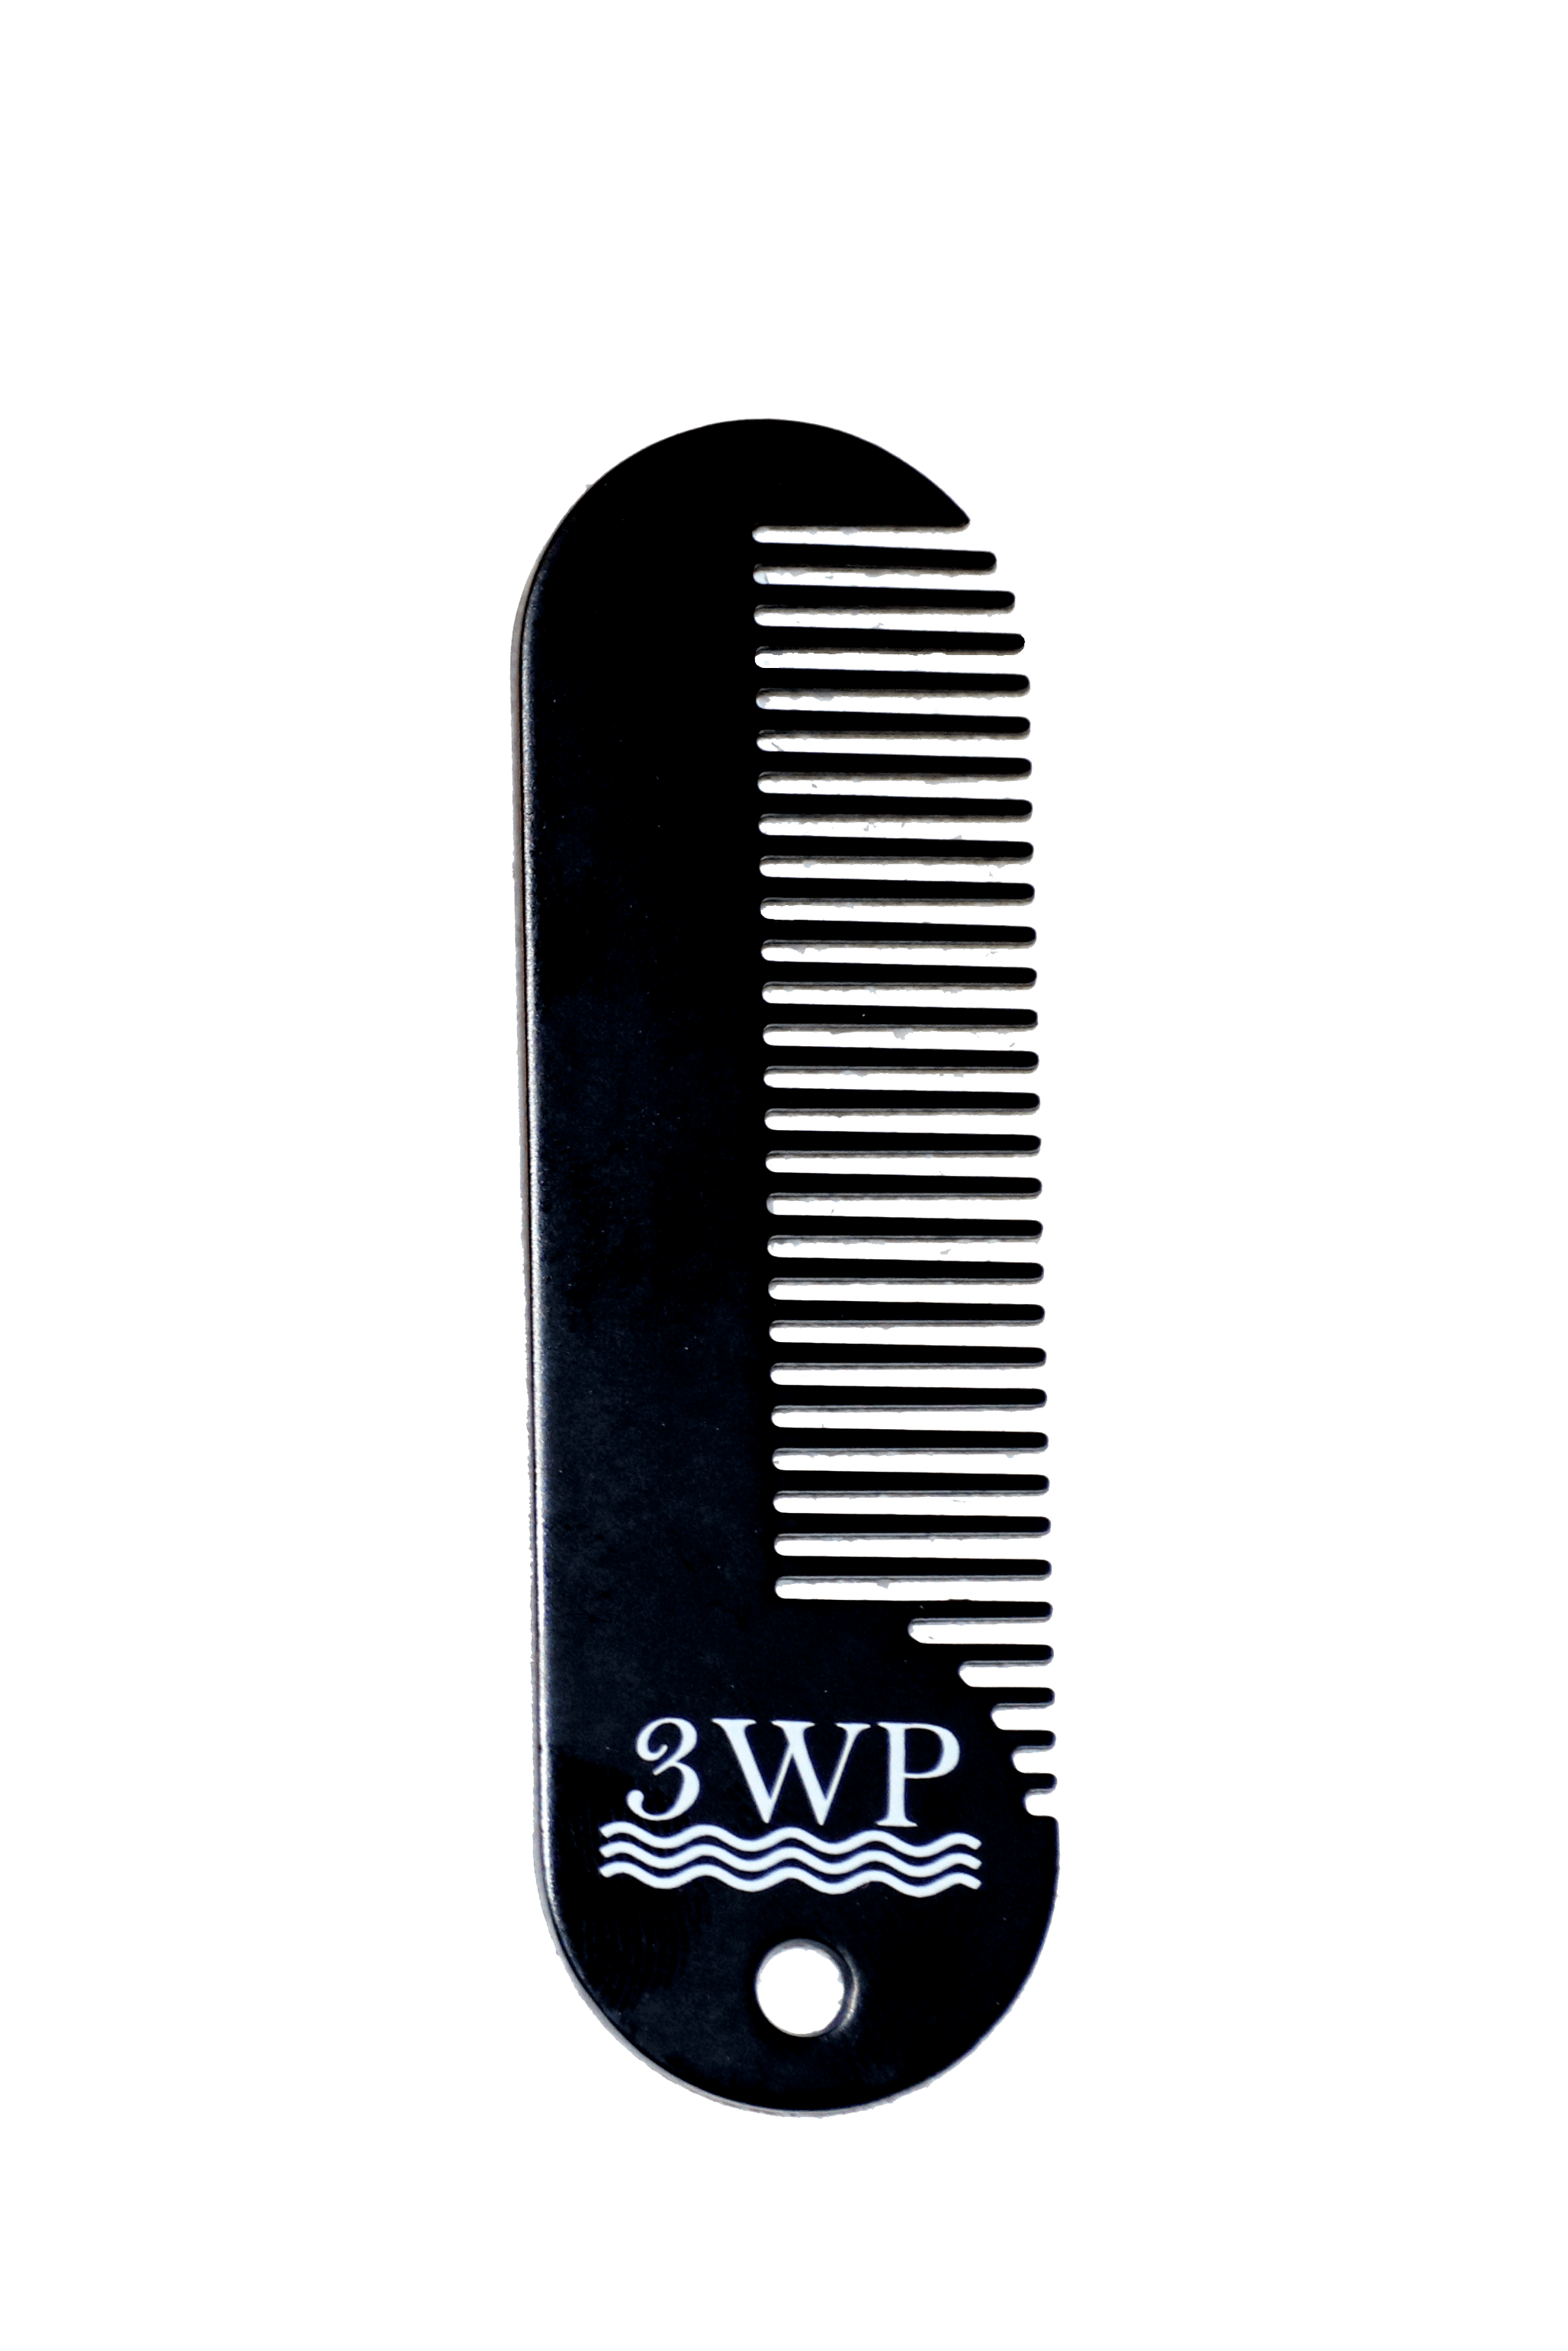 Black Metal 3WP Wave and Beard Keychain Comb